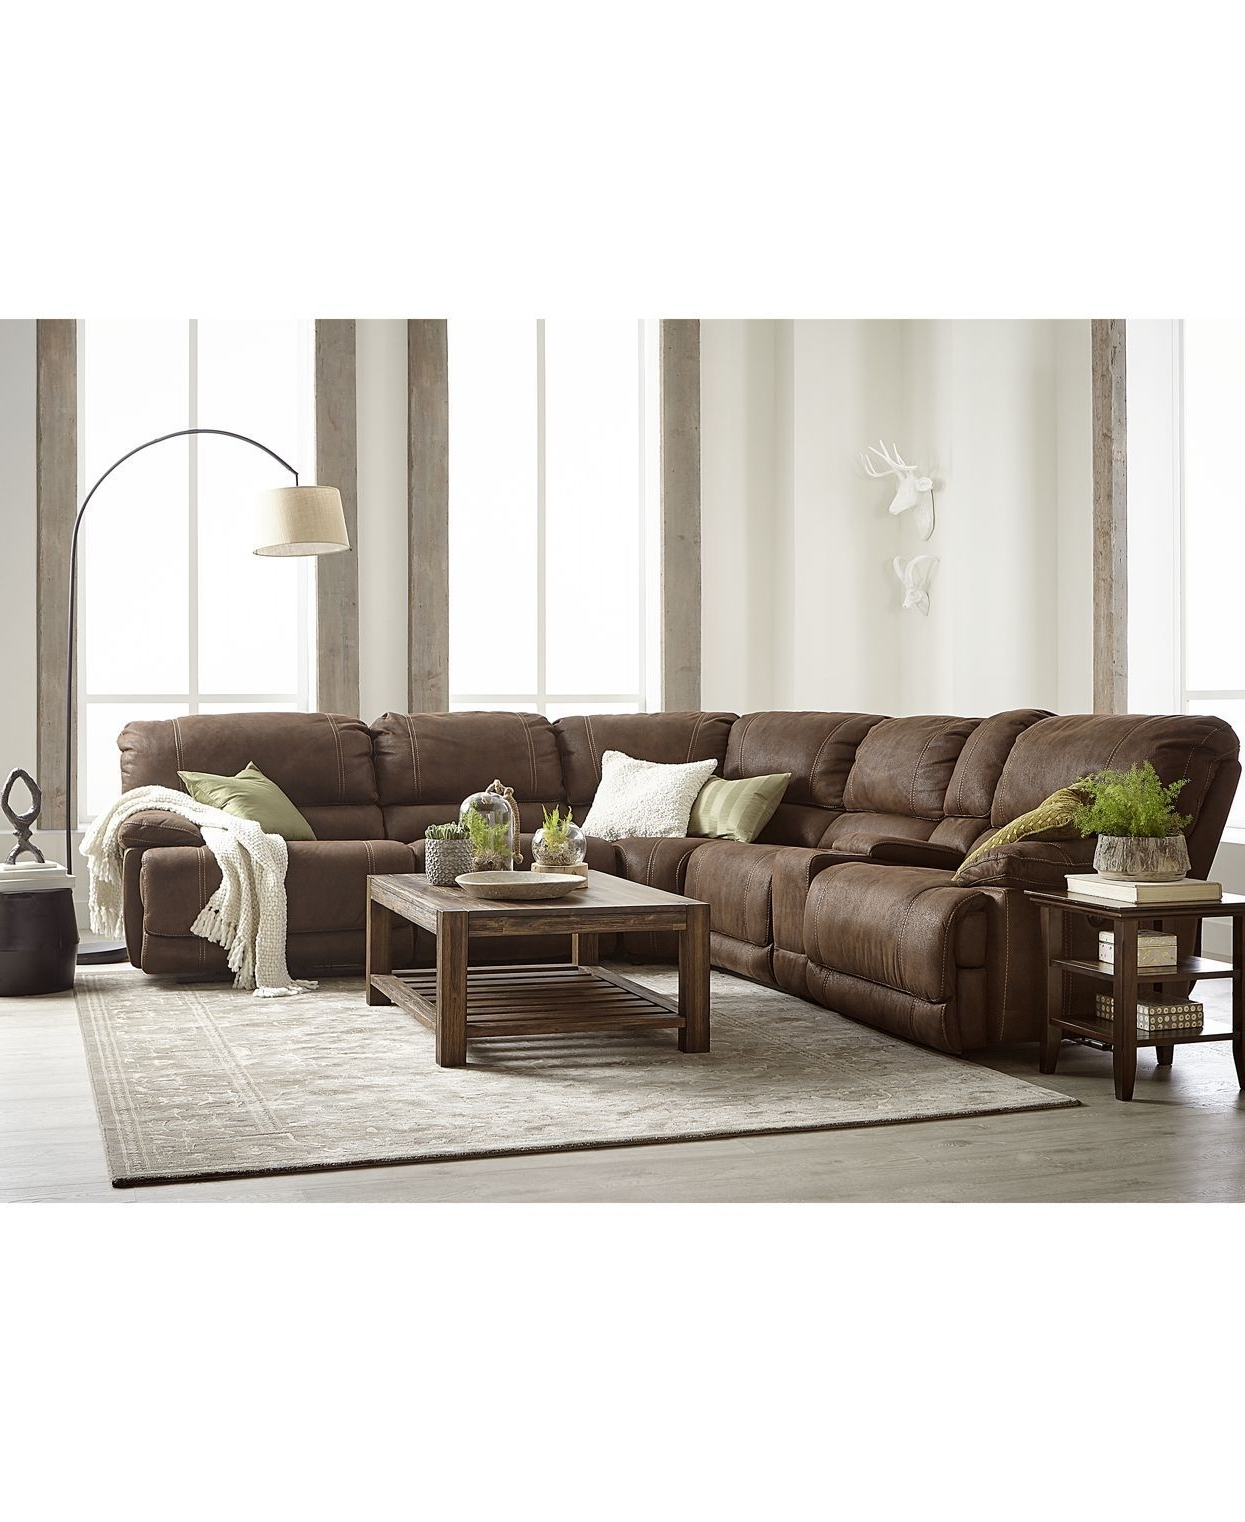 Jedd Fabric Reclining Sectional Sofas throughout Best and Newest Ultra Modern And Generously Sized, The Goliath Arc Floor Lamp